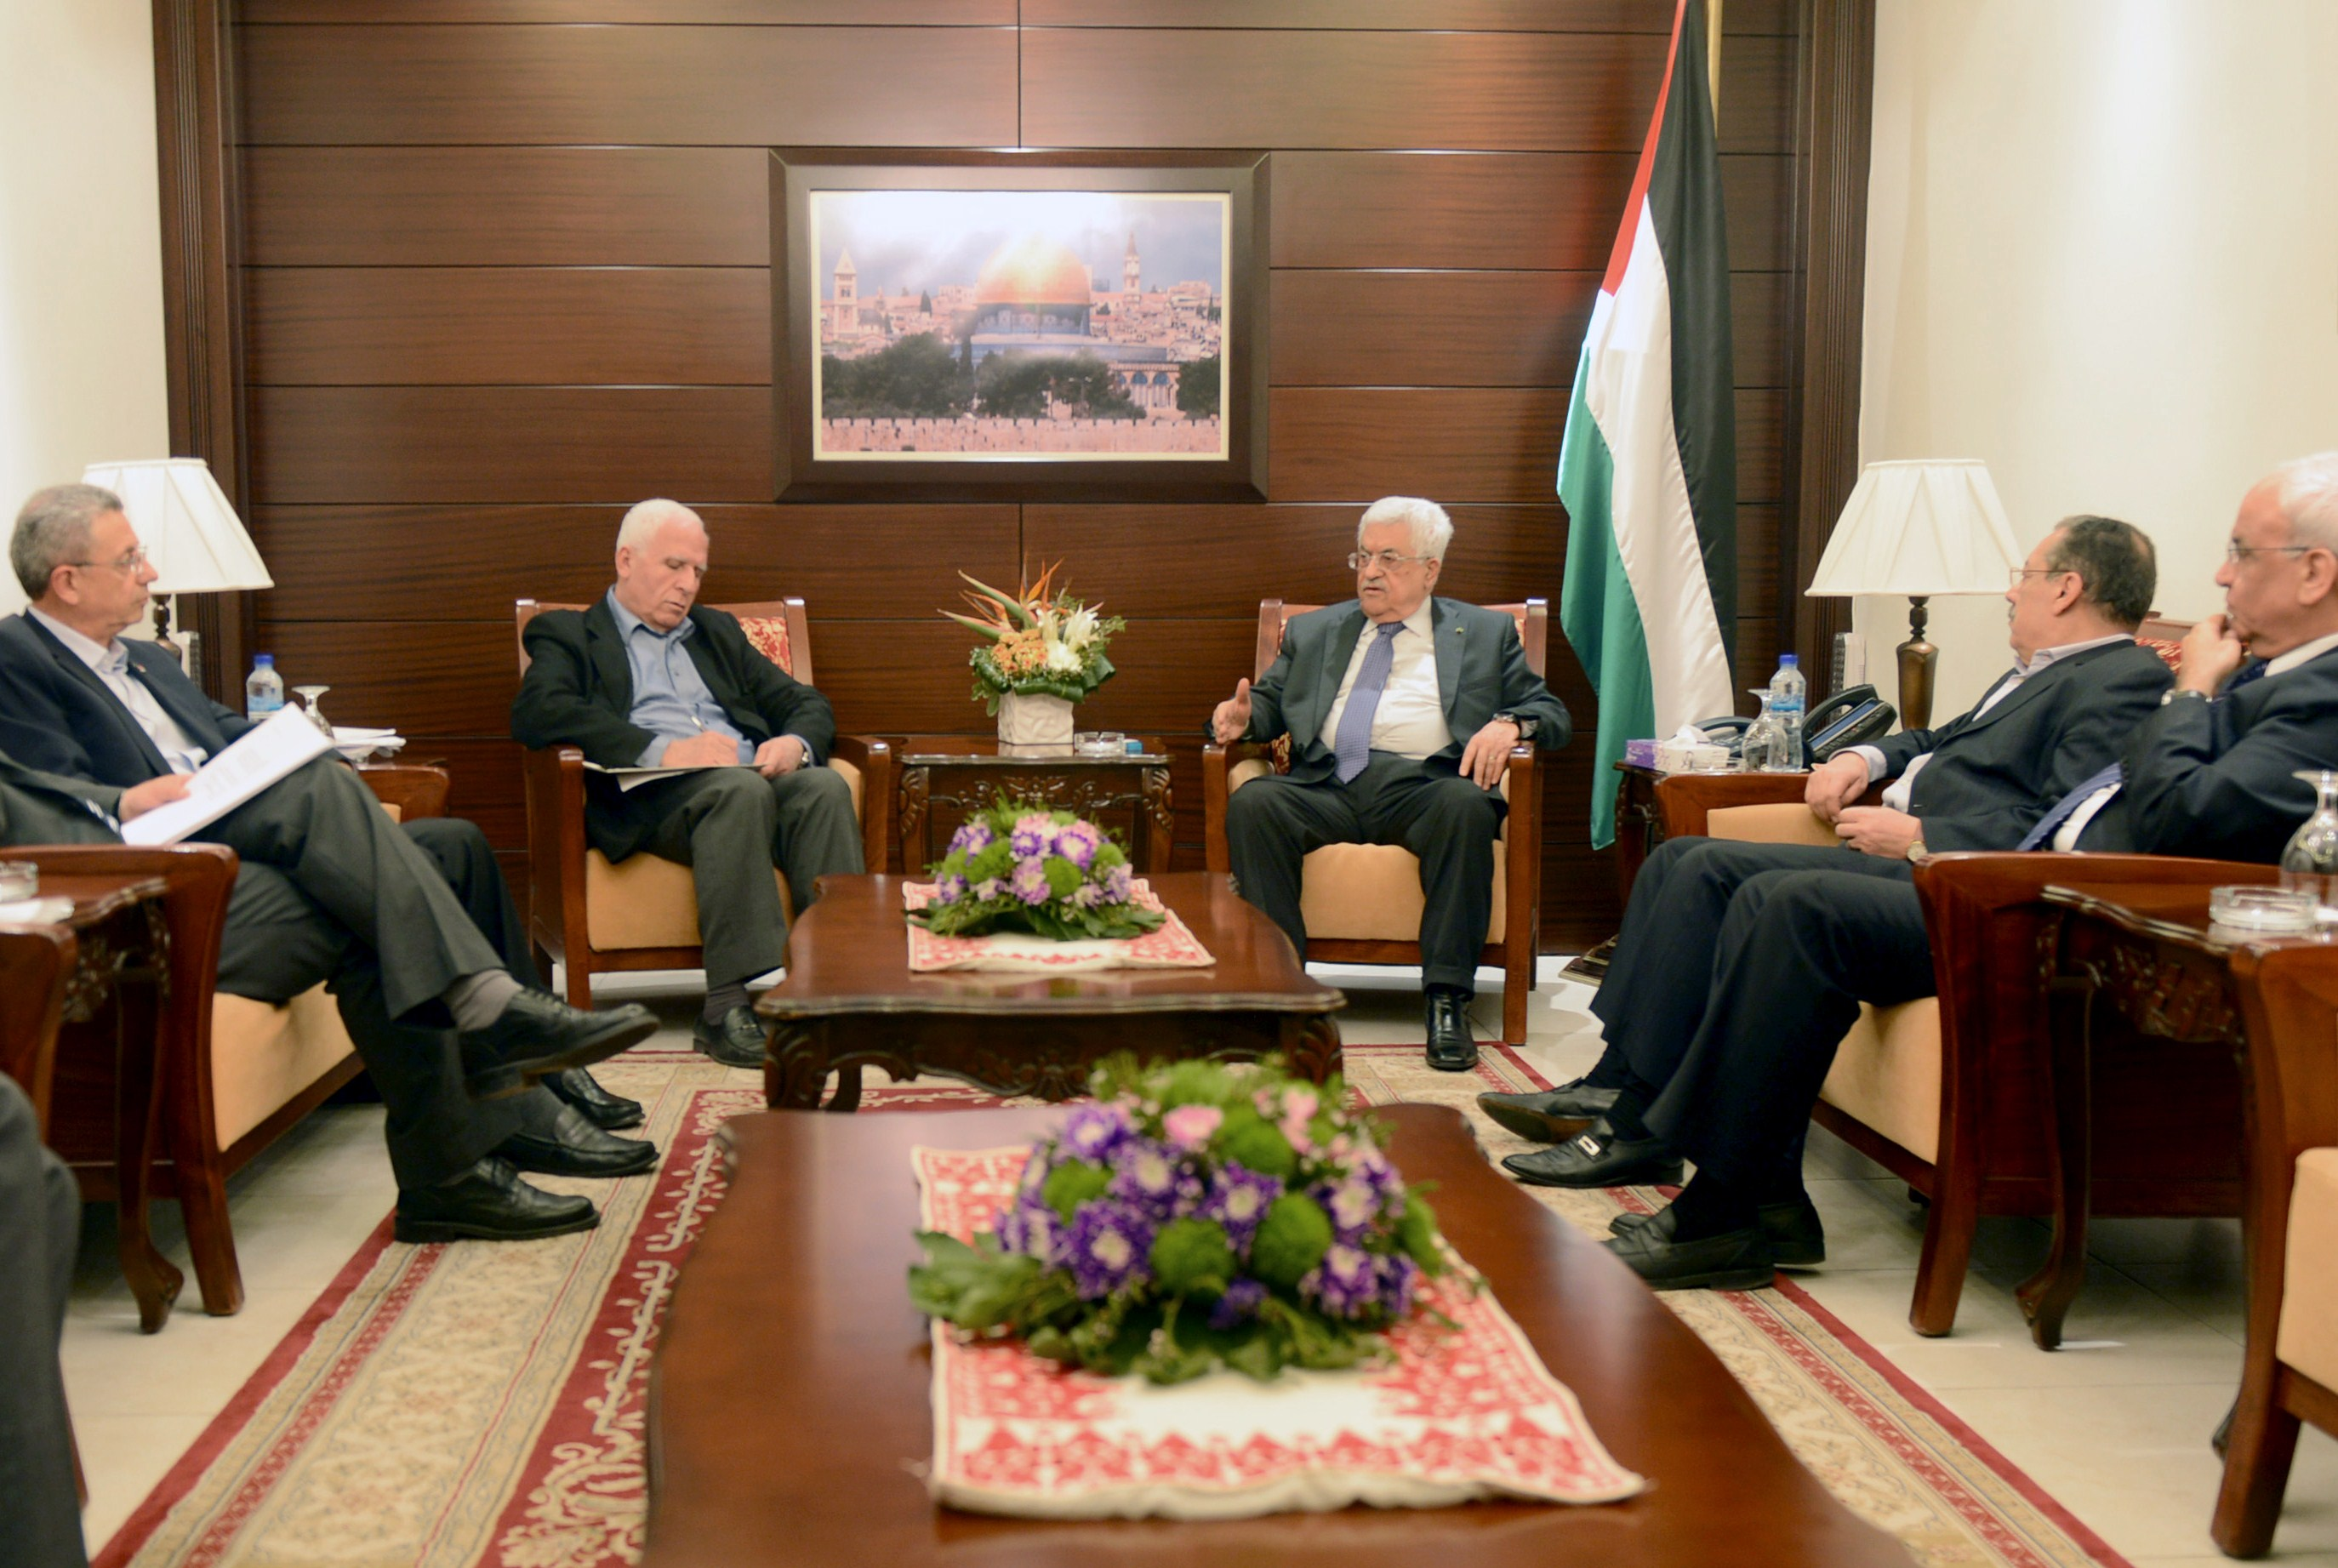 """A handout picture released by the Palestinian president's Press Office shows Palestinian president Mahmud Abbas (C-R) meeting with the delegation of the Palestine Liberation Organisation (PLO) in the West Bank city of Ramallah on April 22, 2014, ahead of its departure to Gaza for talks with Hamas. A senior Cairo-based Hamas official crossed yesterday from Egypt into the Gaza Strip ahead of a new attempt to reconcile the militant Islamist movement and its Palestine Liberation Organisation rivals. AFP PHOTO / PPO / THAER GHANAIM === RESTRICTED TO EDITORIAL USE / MANDATORY CREDIT """"AFP PHOTO / PPO / THAER GHANAIM"""" NO MARKETING / NO ADVERTISING CAMPAIGNS / DISTRIBUTED AS A SERVICE TO CLIENTS ==="""